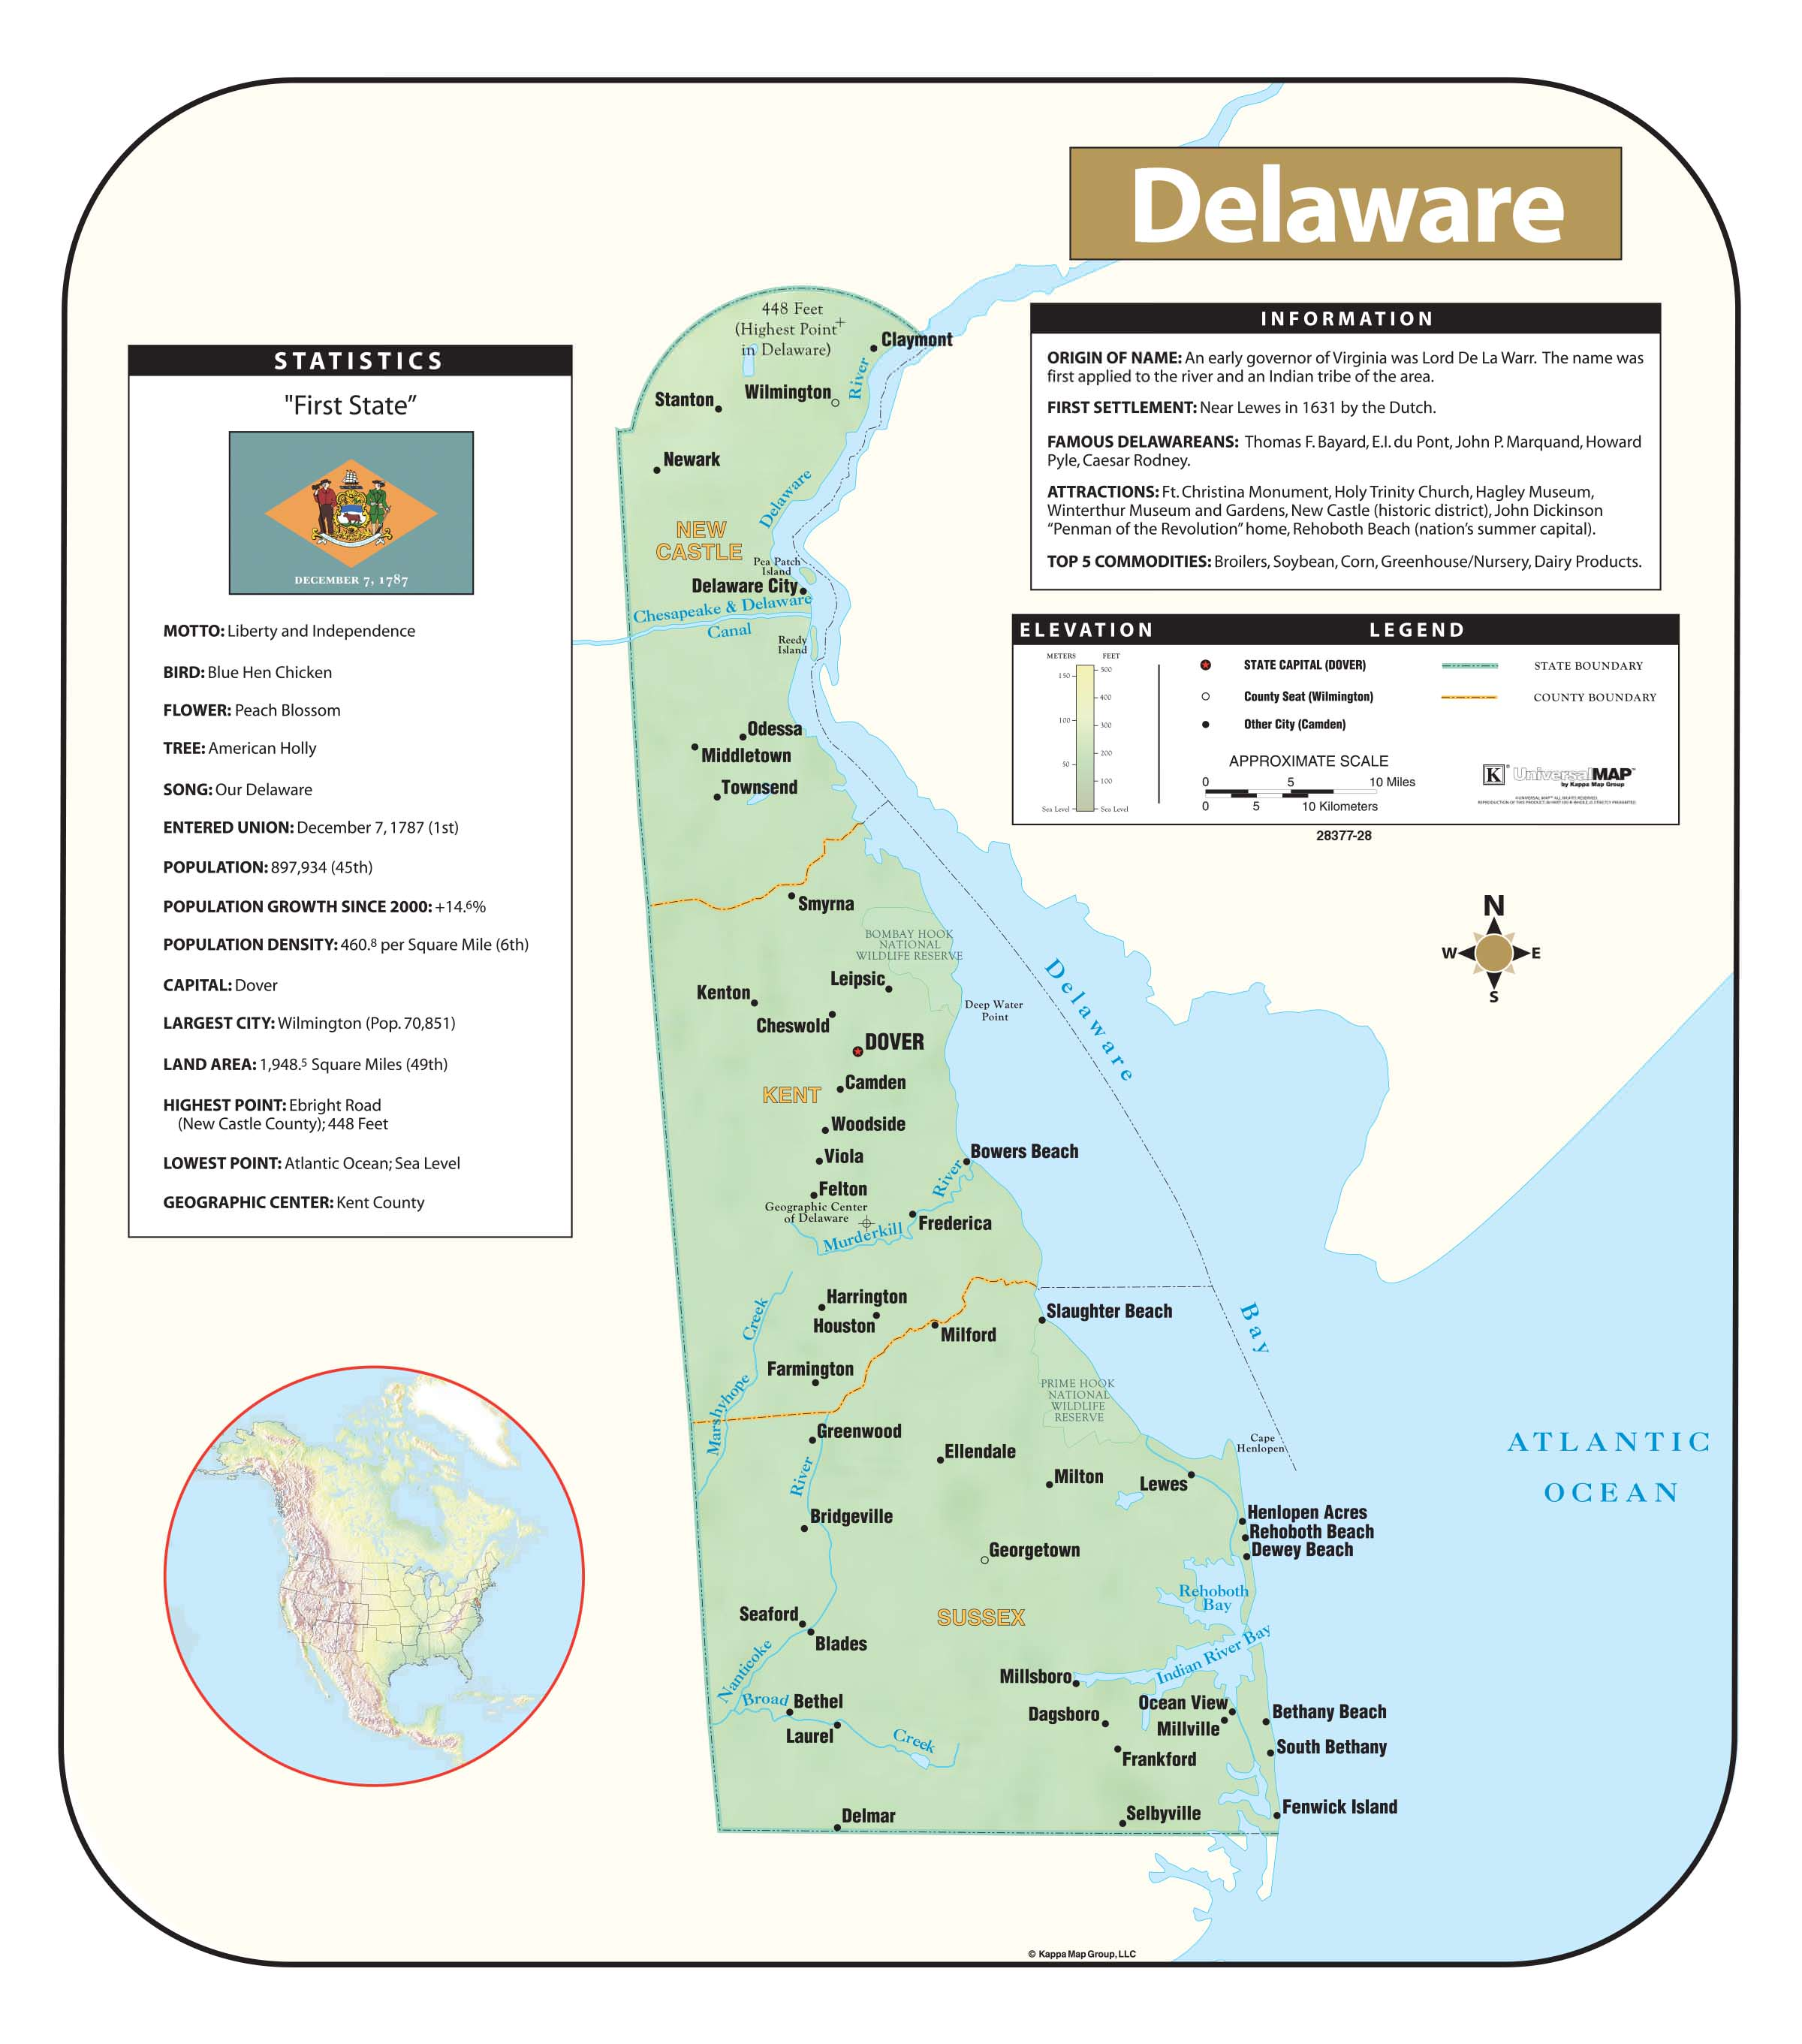 Delaware Shaded Relief Map on mississippi map, georgia map, north carolina map, nova scotia map, michigan map, south carolina map, kansas map, idaho map, new england map, wisconsin map, ohio map, maine map, dc map, usa map, connecticut map, iowa map, pennsylvania map, nevada map, illinois map, us state map, rhode island map, virginia map, minnesota map, florida map, louisiana map, maryland map, utah map, missouri map, montana map, indiana map, texas map, new york map, kentucky map,